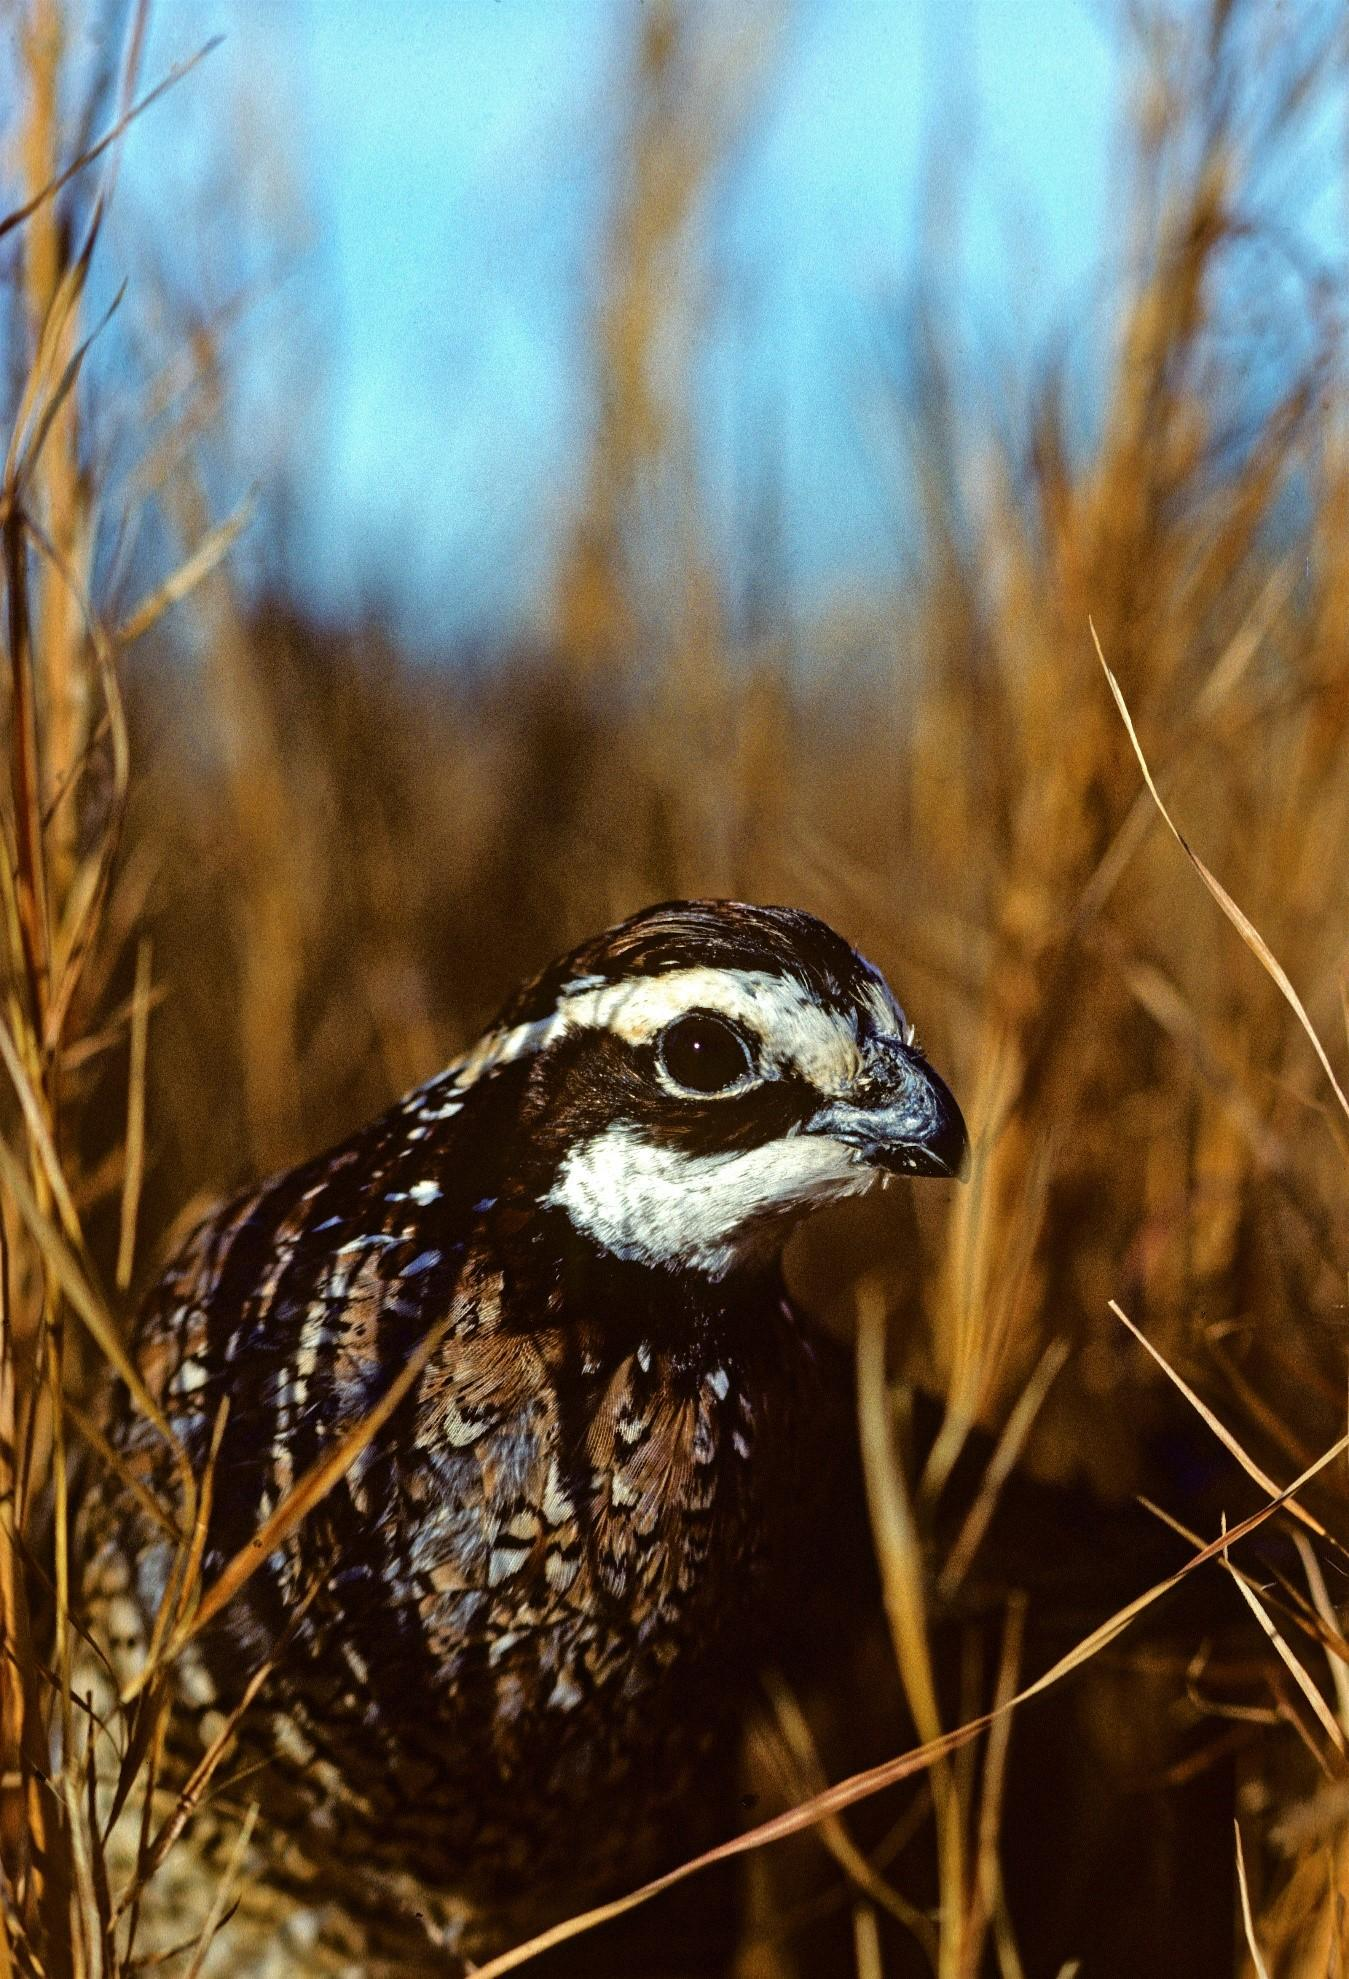 To help reconnect cattle and quail, USDA's Natural Resources Conservation Service is working with cattle producers to replace non-native forage grasses, like fescue, with native warm-season grasses that create productive and palatable grazing options for livestock while benefiting quail and other wildlife species.